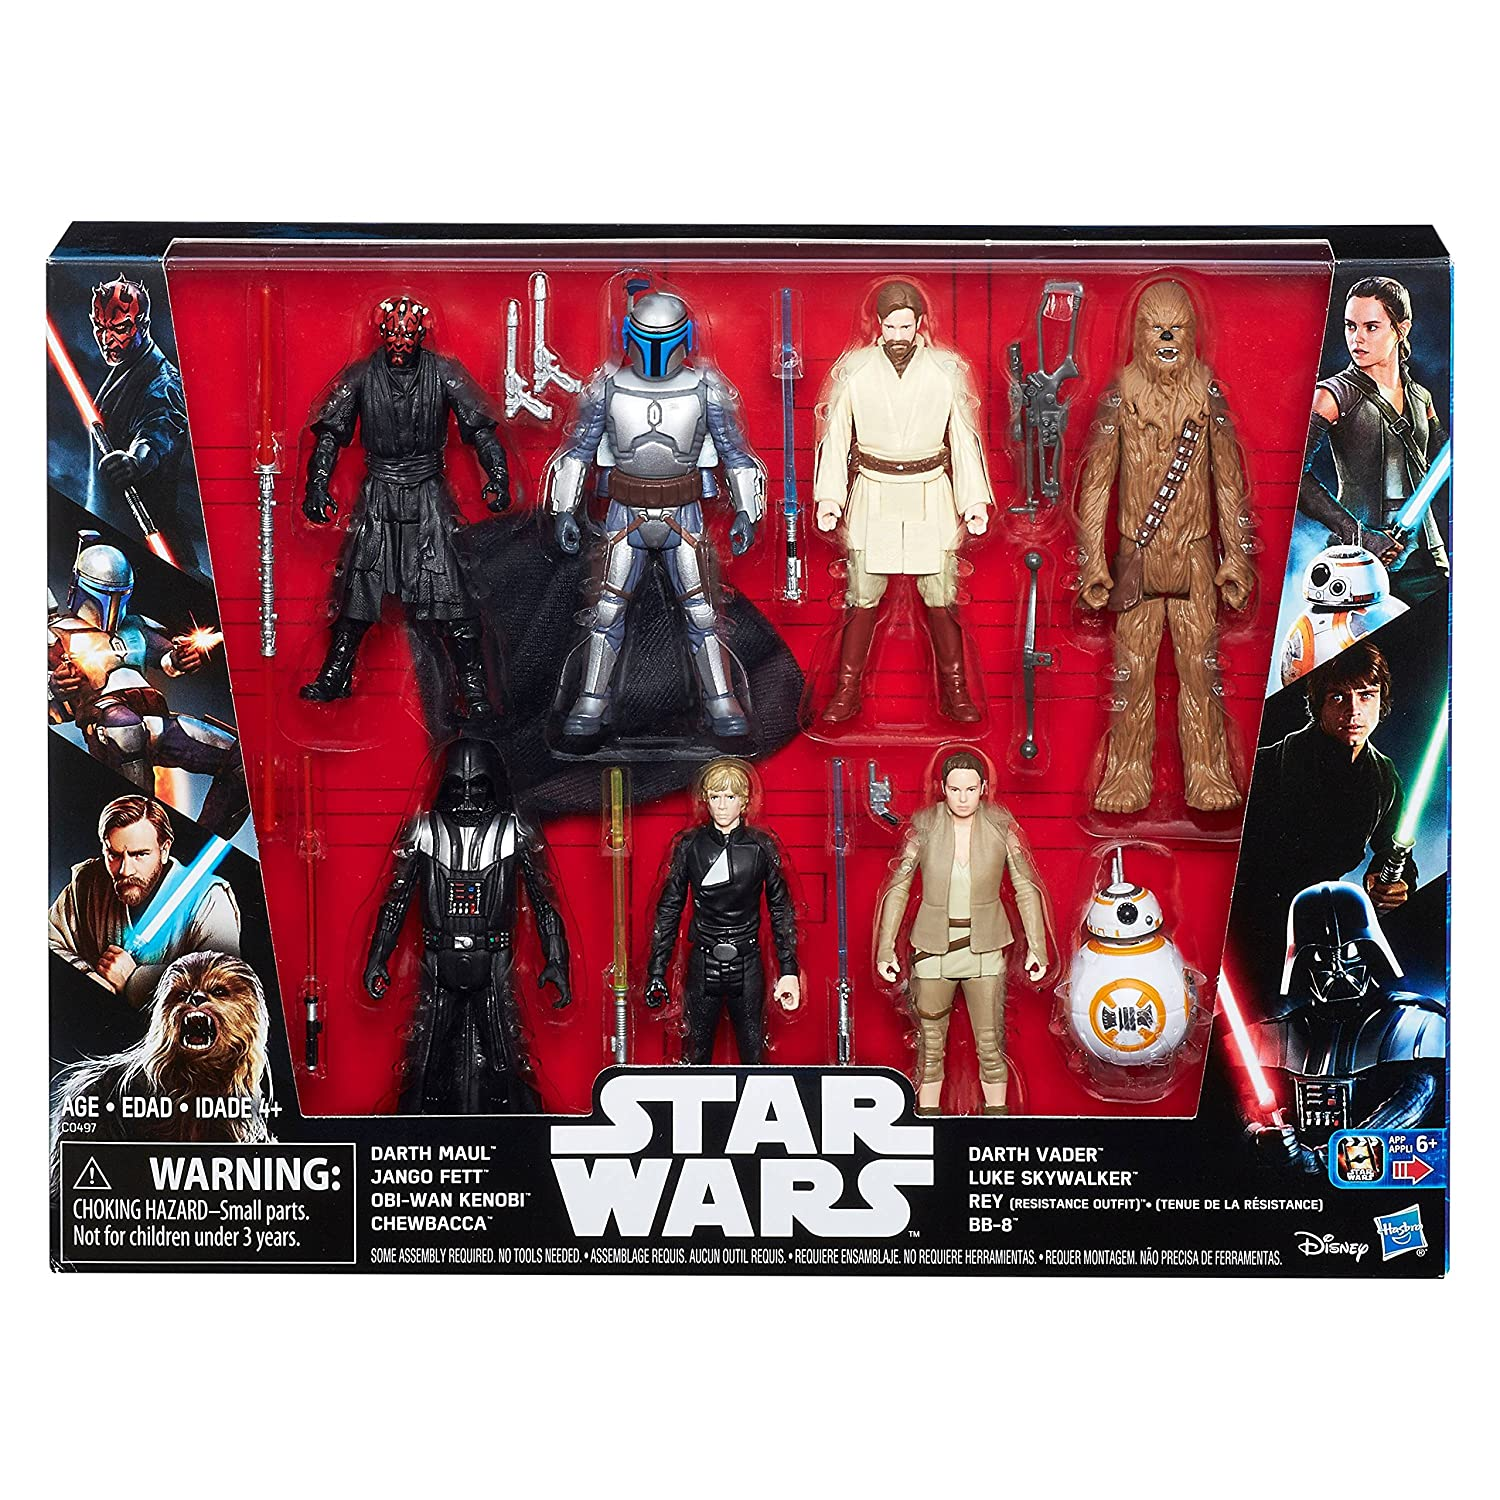 Star Wars Saga Action Figure 8 Pack